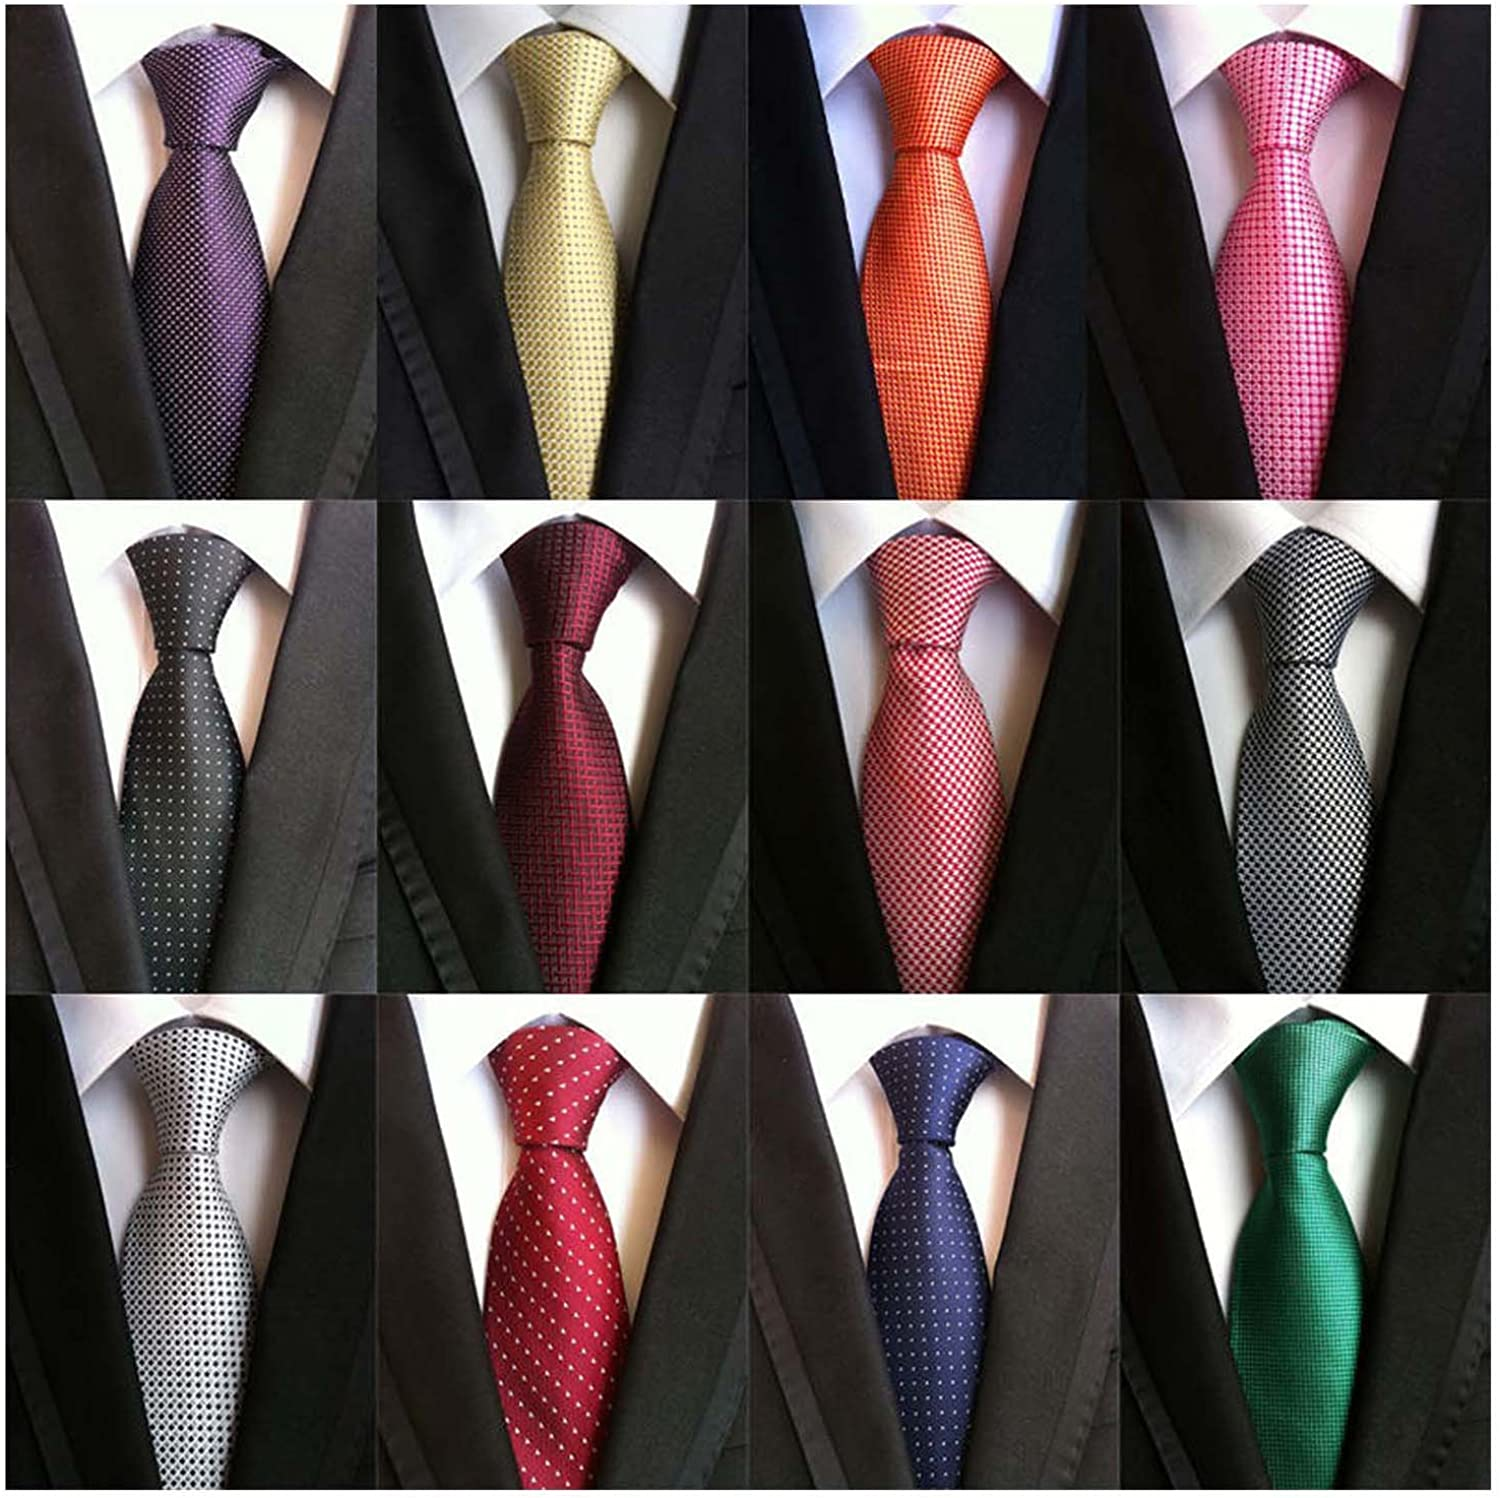 LOT 50 PCS 100/% SILK NECKTIES DRESS SUIT NECK TIE QUILT CRAFT TIES FREE SHIPPING